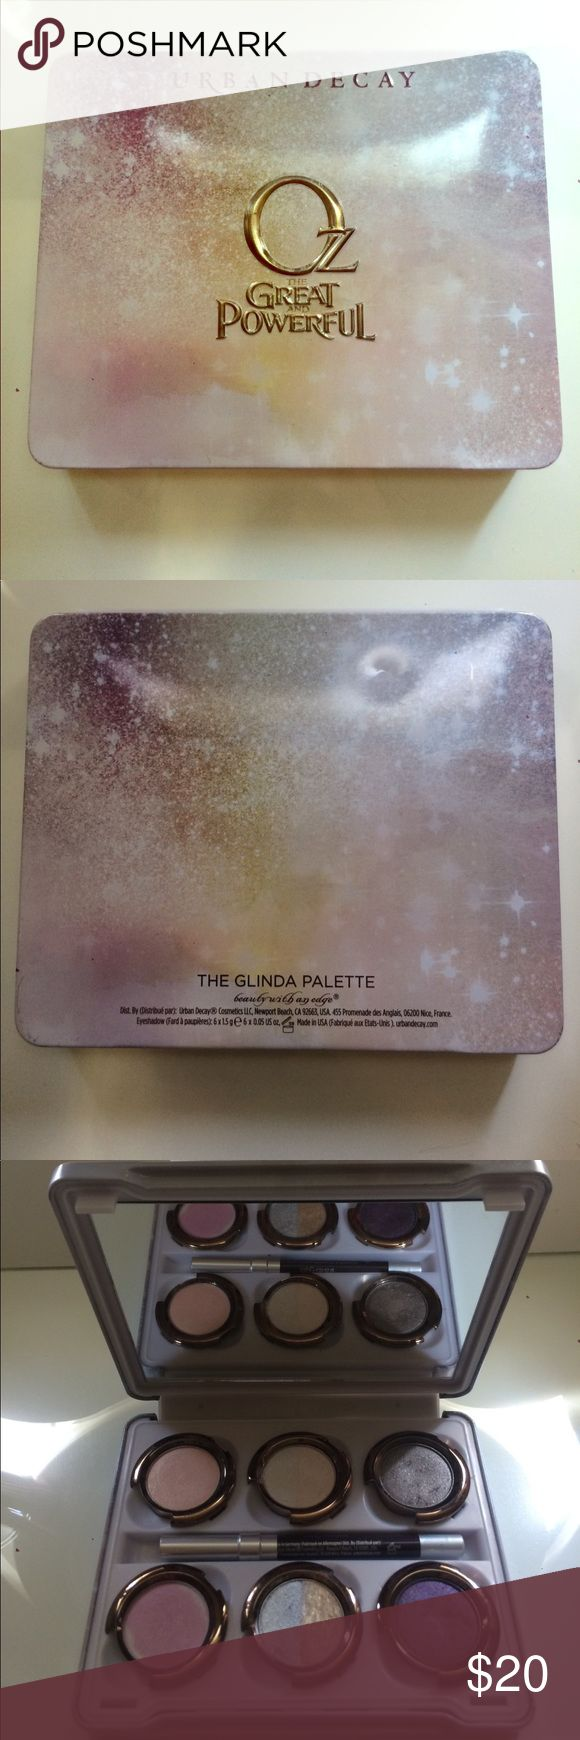 Urban Decay The Glinda Palette *Limited Edition* Lightly used in good condition comes with the -Rockstar eyeliner -Glinda gloss lip color Urban Decay Makeup Eyeshadow